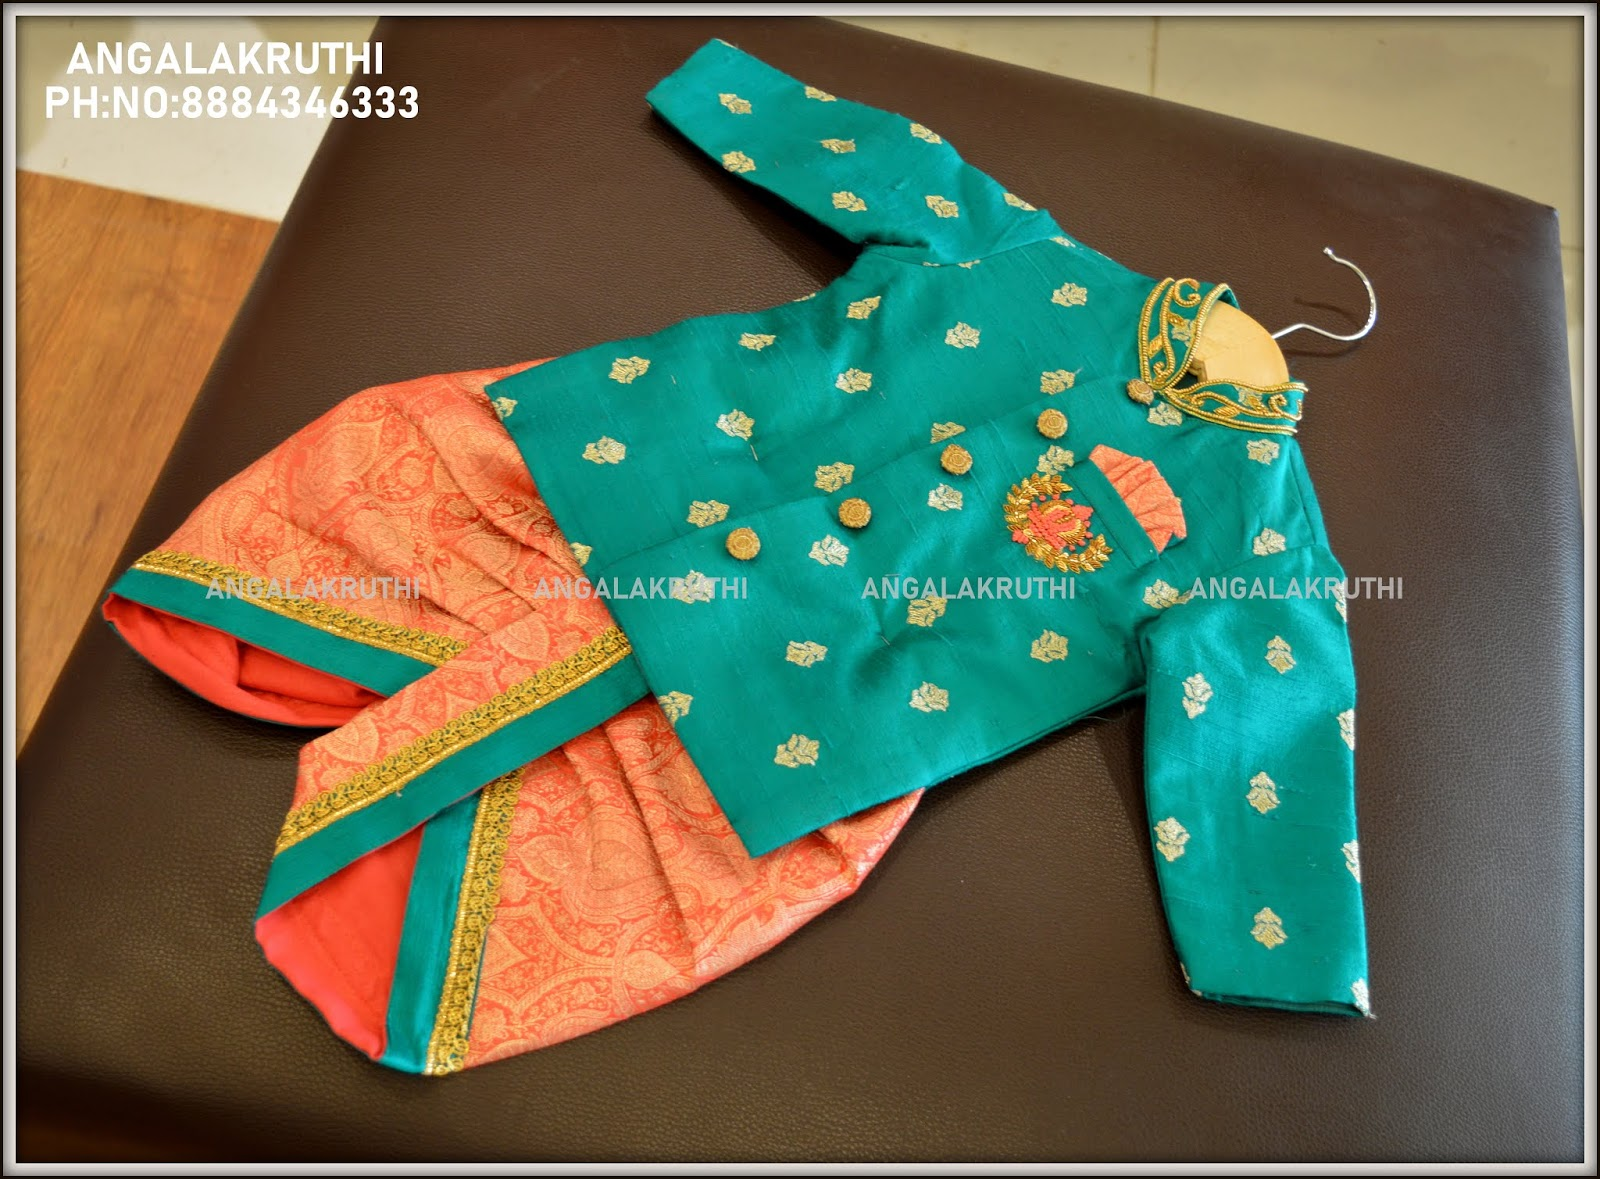 Angalakruthi Boutique Ladies And Kids Designer Boutique In Bangalore Dad And Son Matching Dress Designs By Angalakruthi Boutique In Bangalore